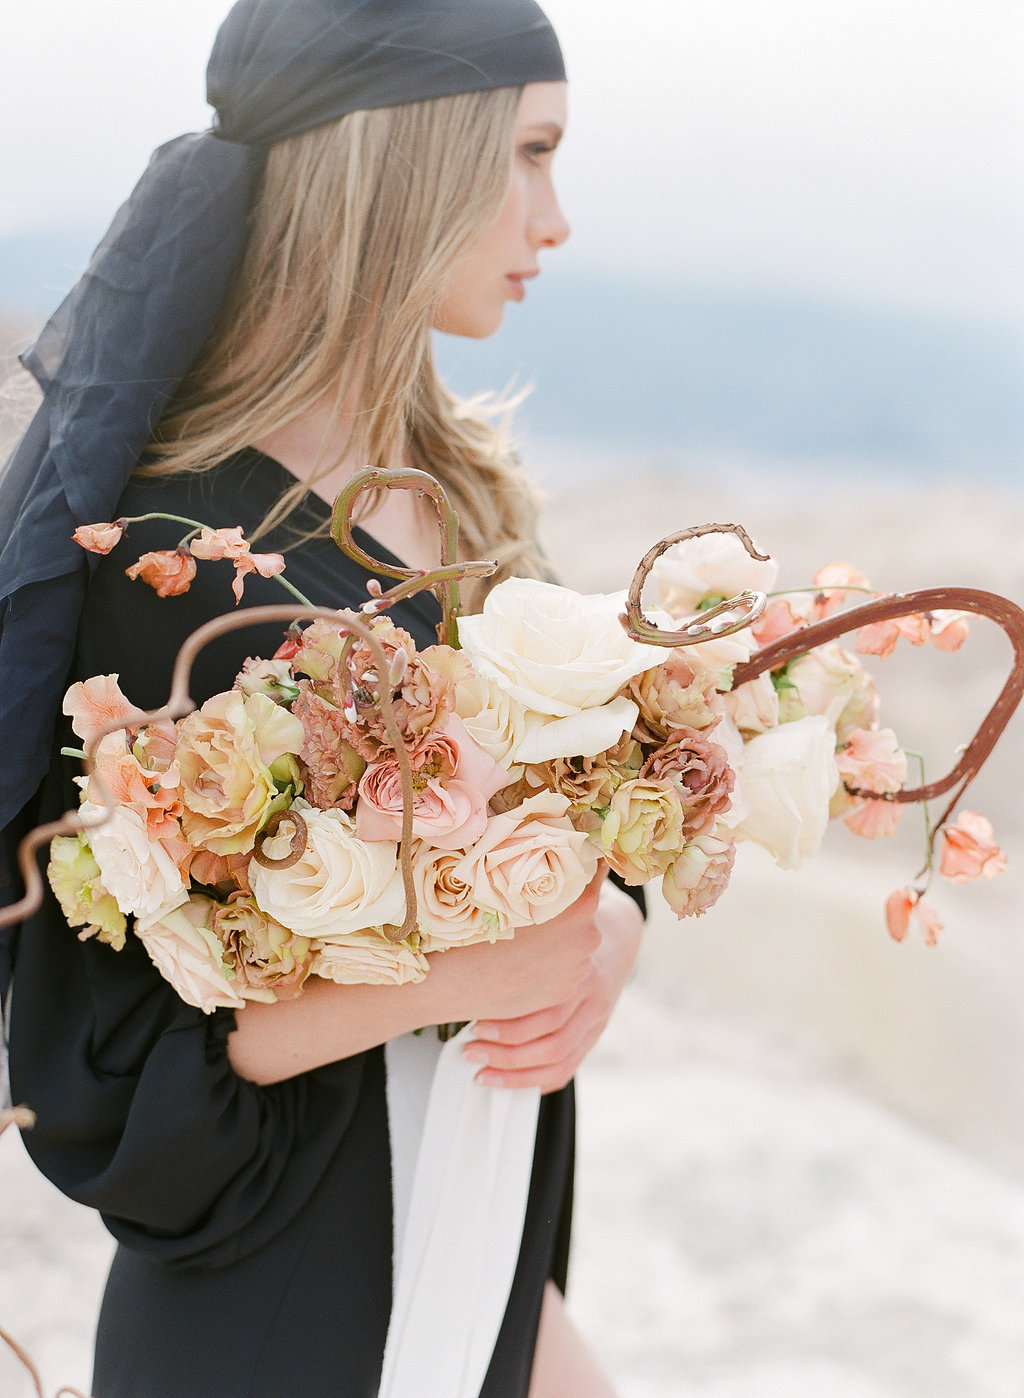 Desert Bridal Inspiration | Desert Wedding | Simon Ly Photography | Janna Brown Design | Joy Wed | Fine Art Wedding Blog | Black Wedding Dress | Stacey Foley Design | Canmore Wedding Planner